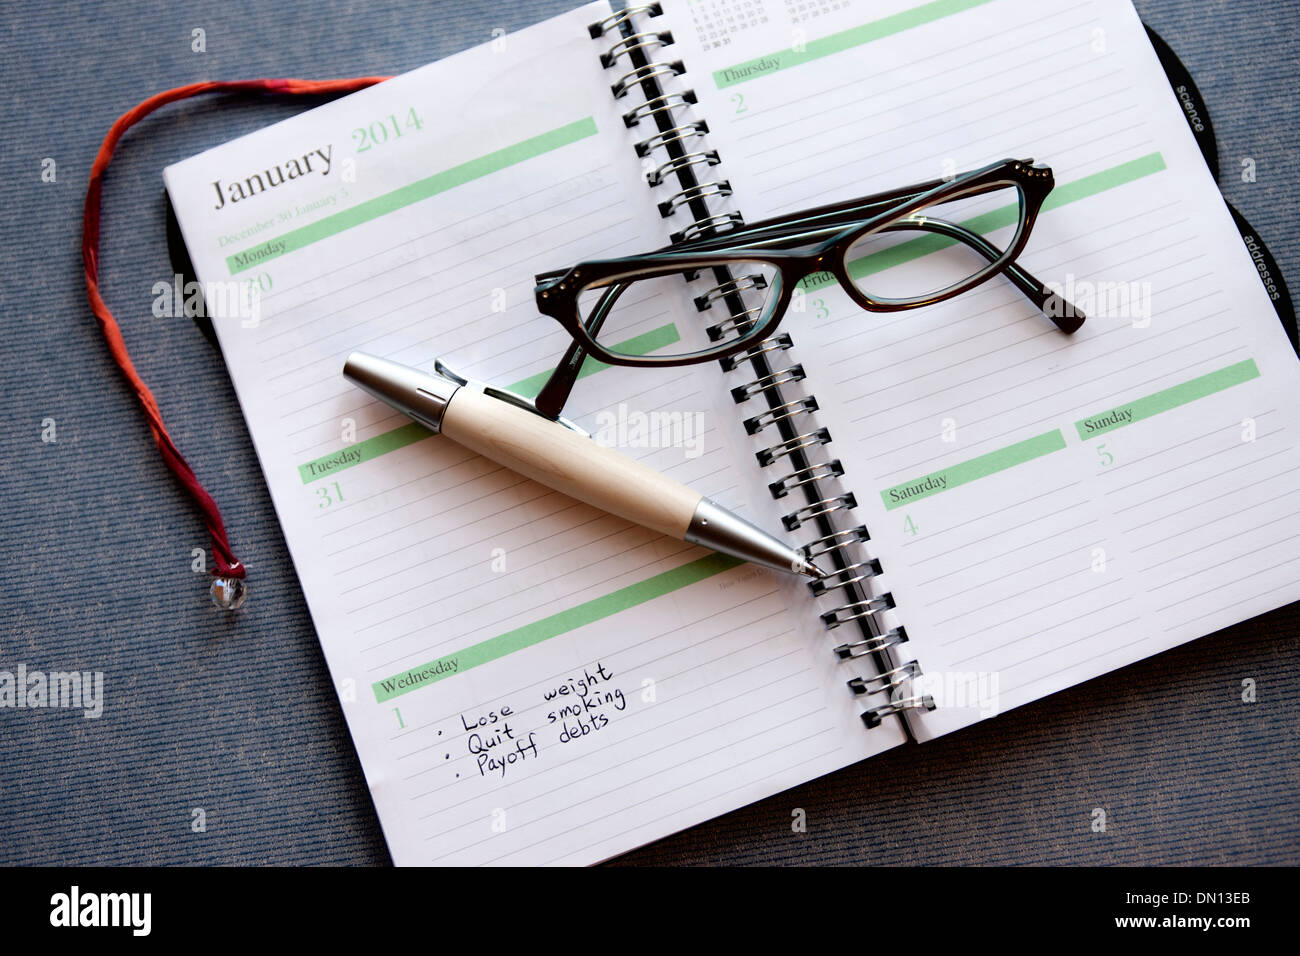 Making a New Year's Resolution in a day planner. - Stock Image